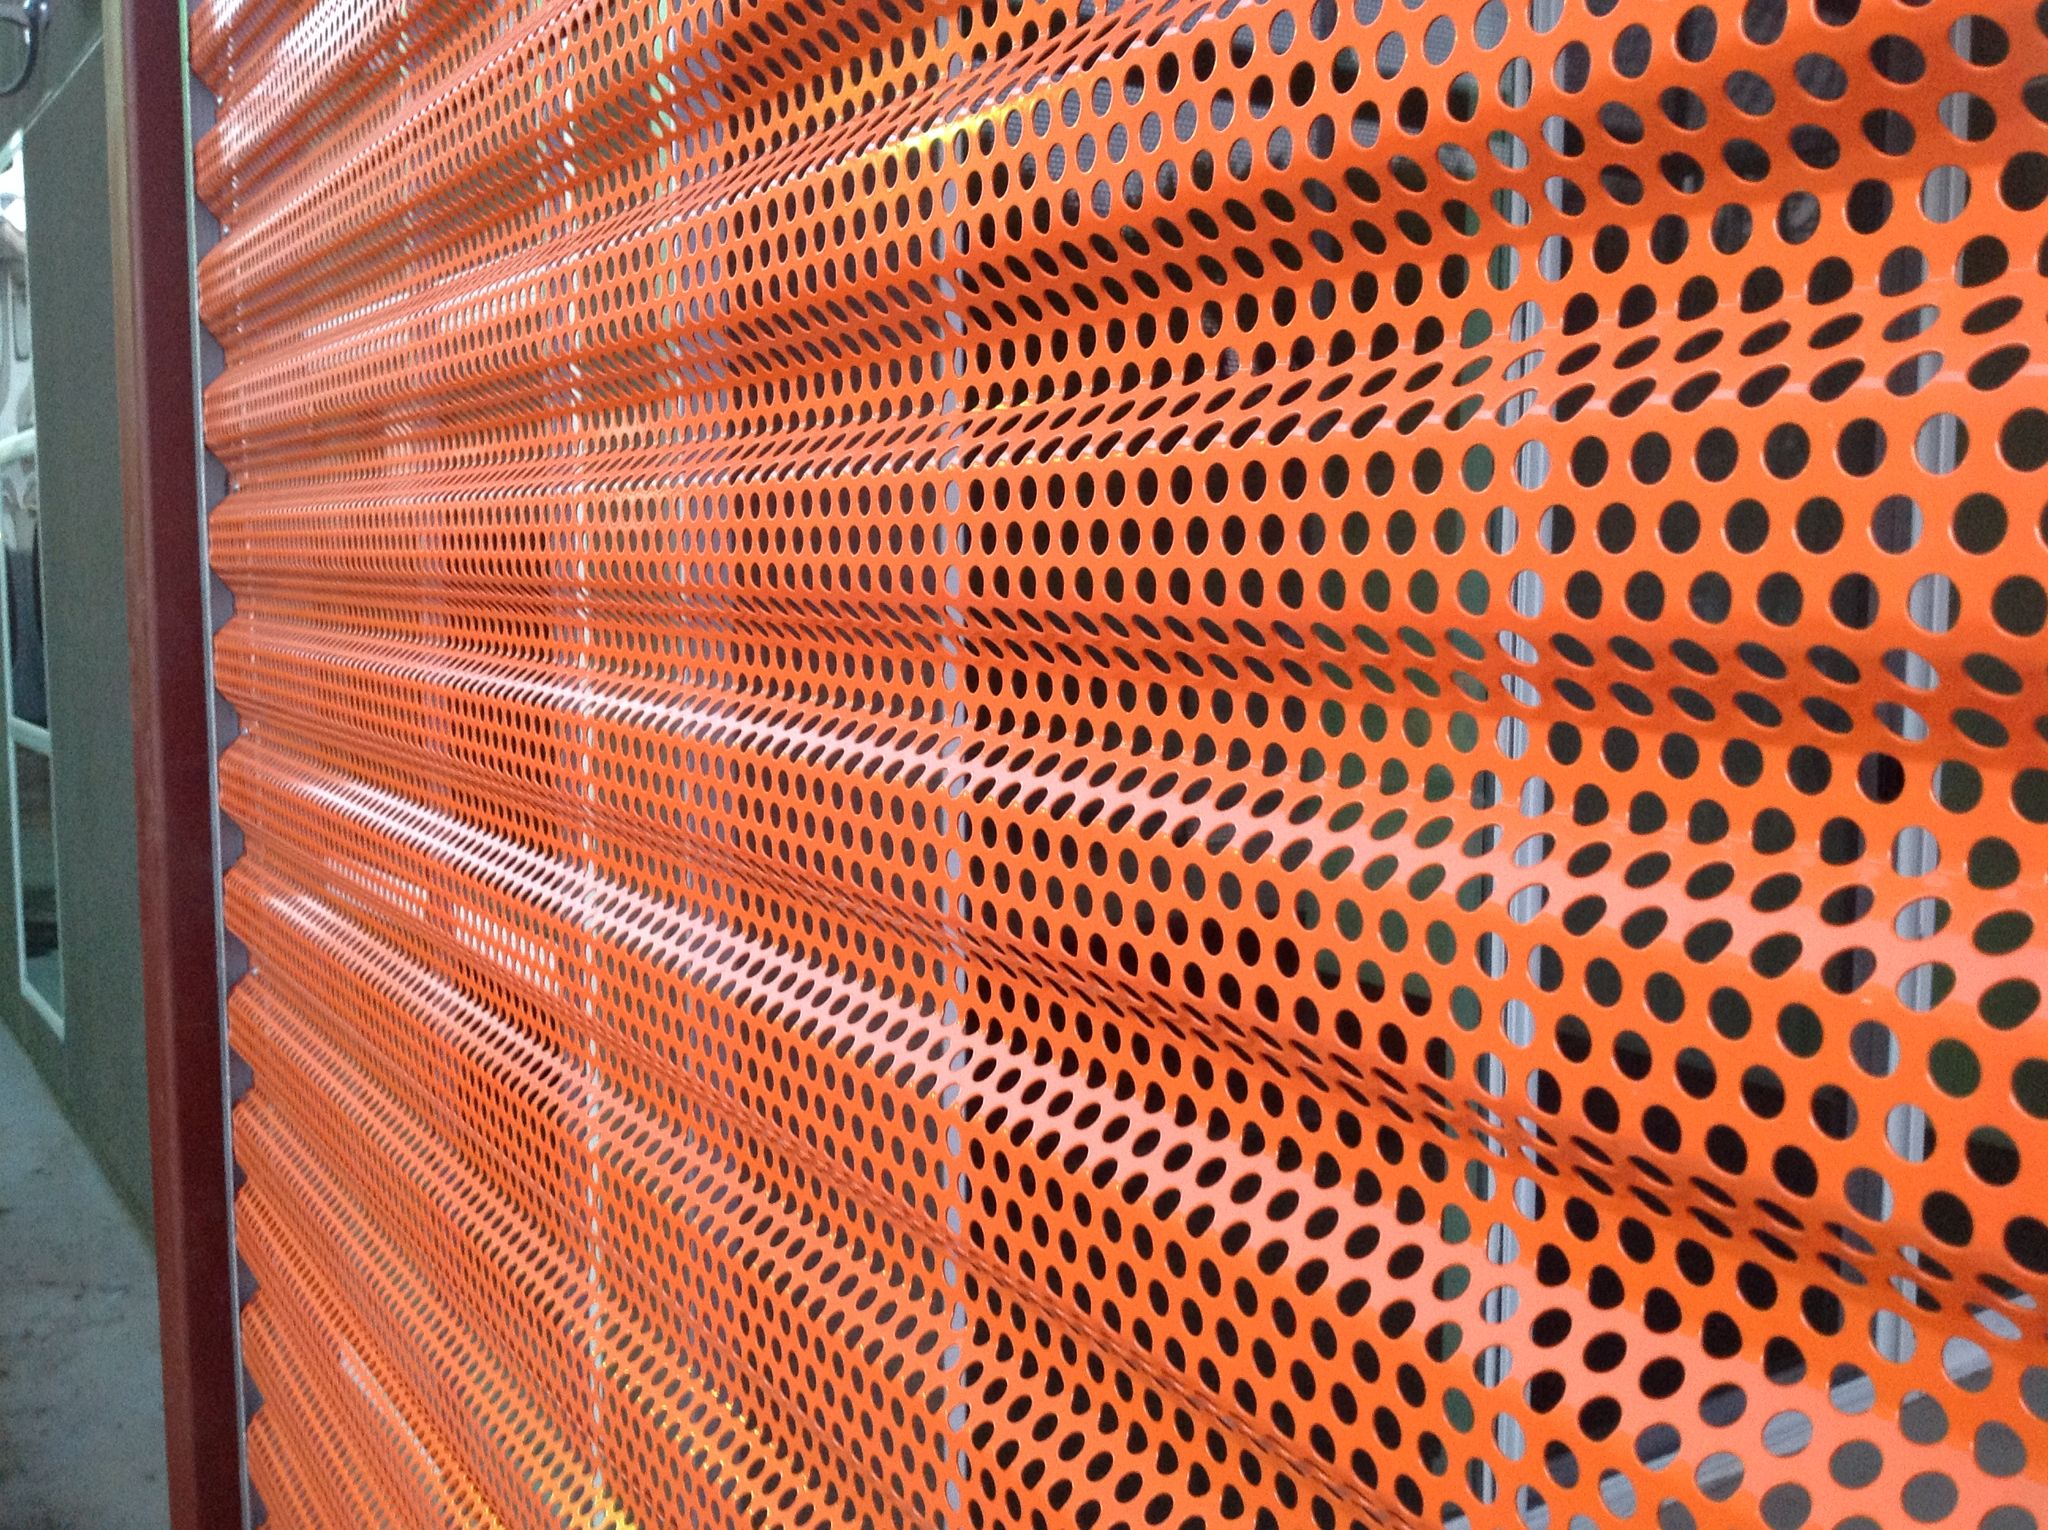 Best Corrugated Perforated Screen Walls Metal Fence Panels 400 x 300